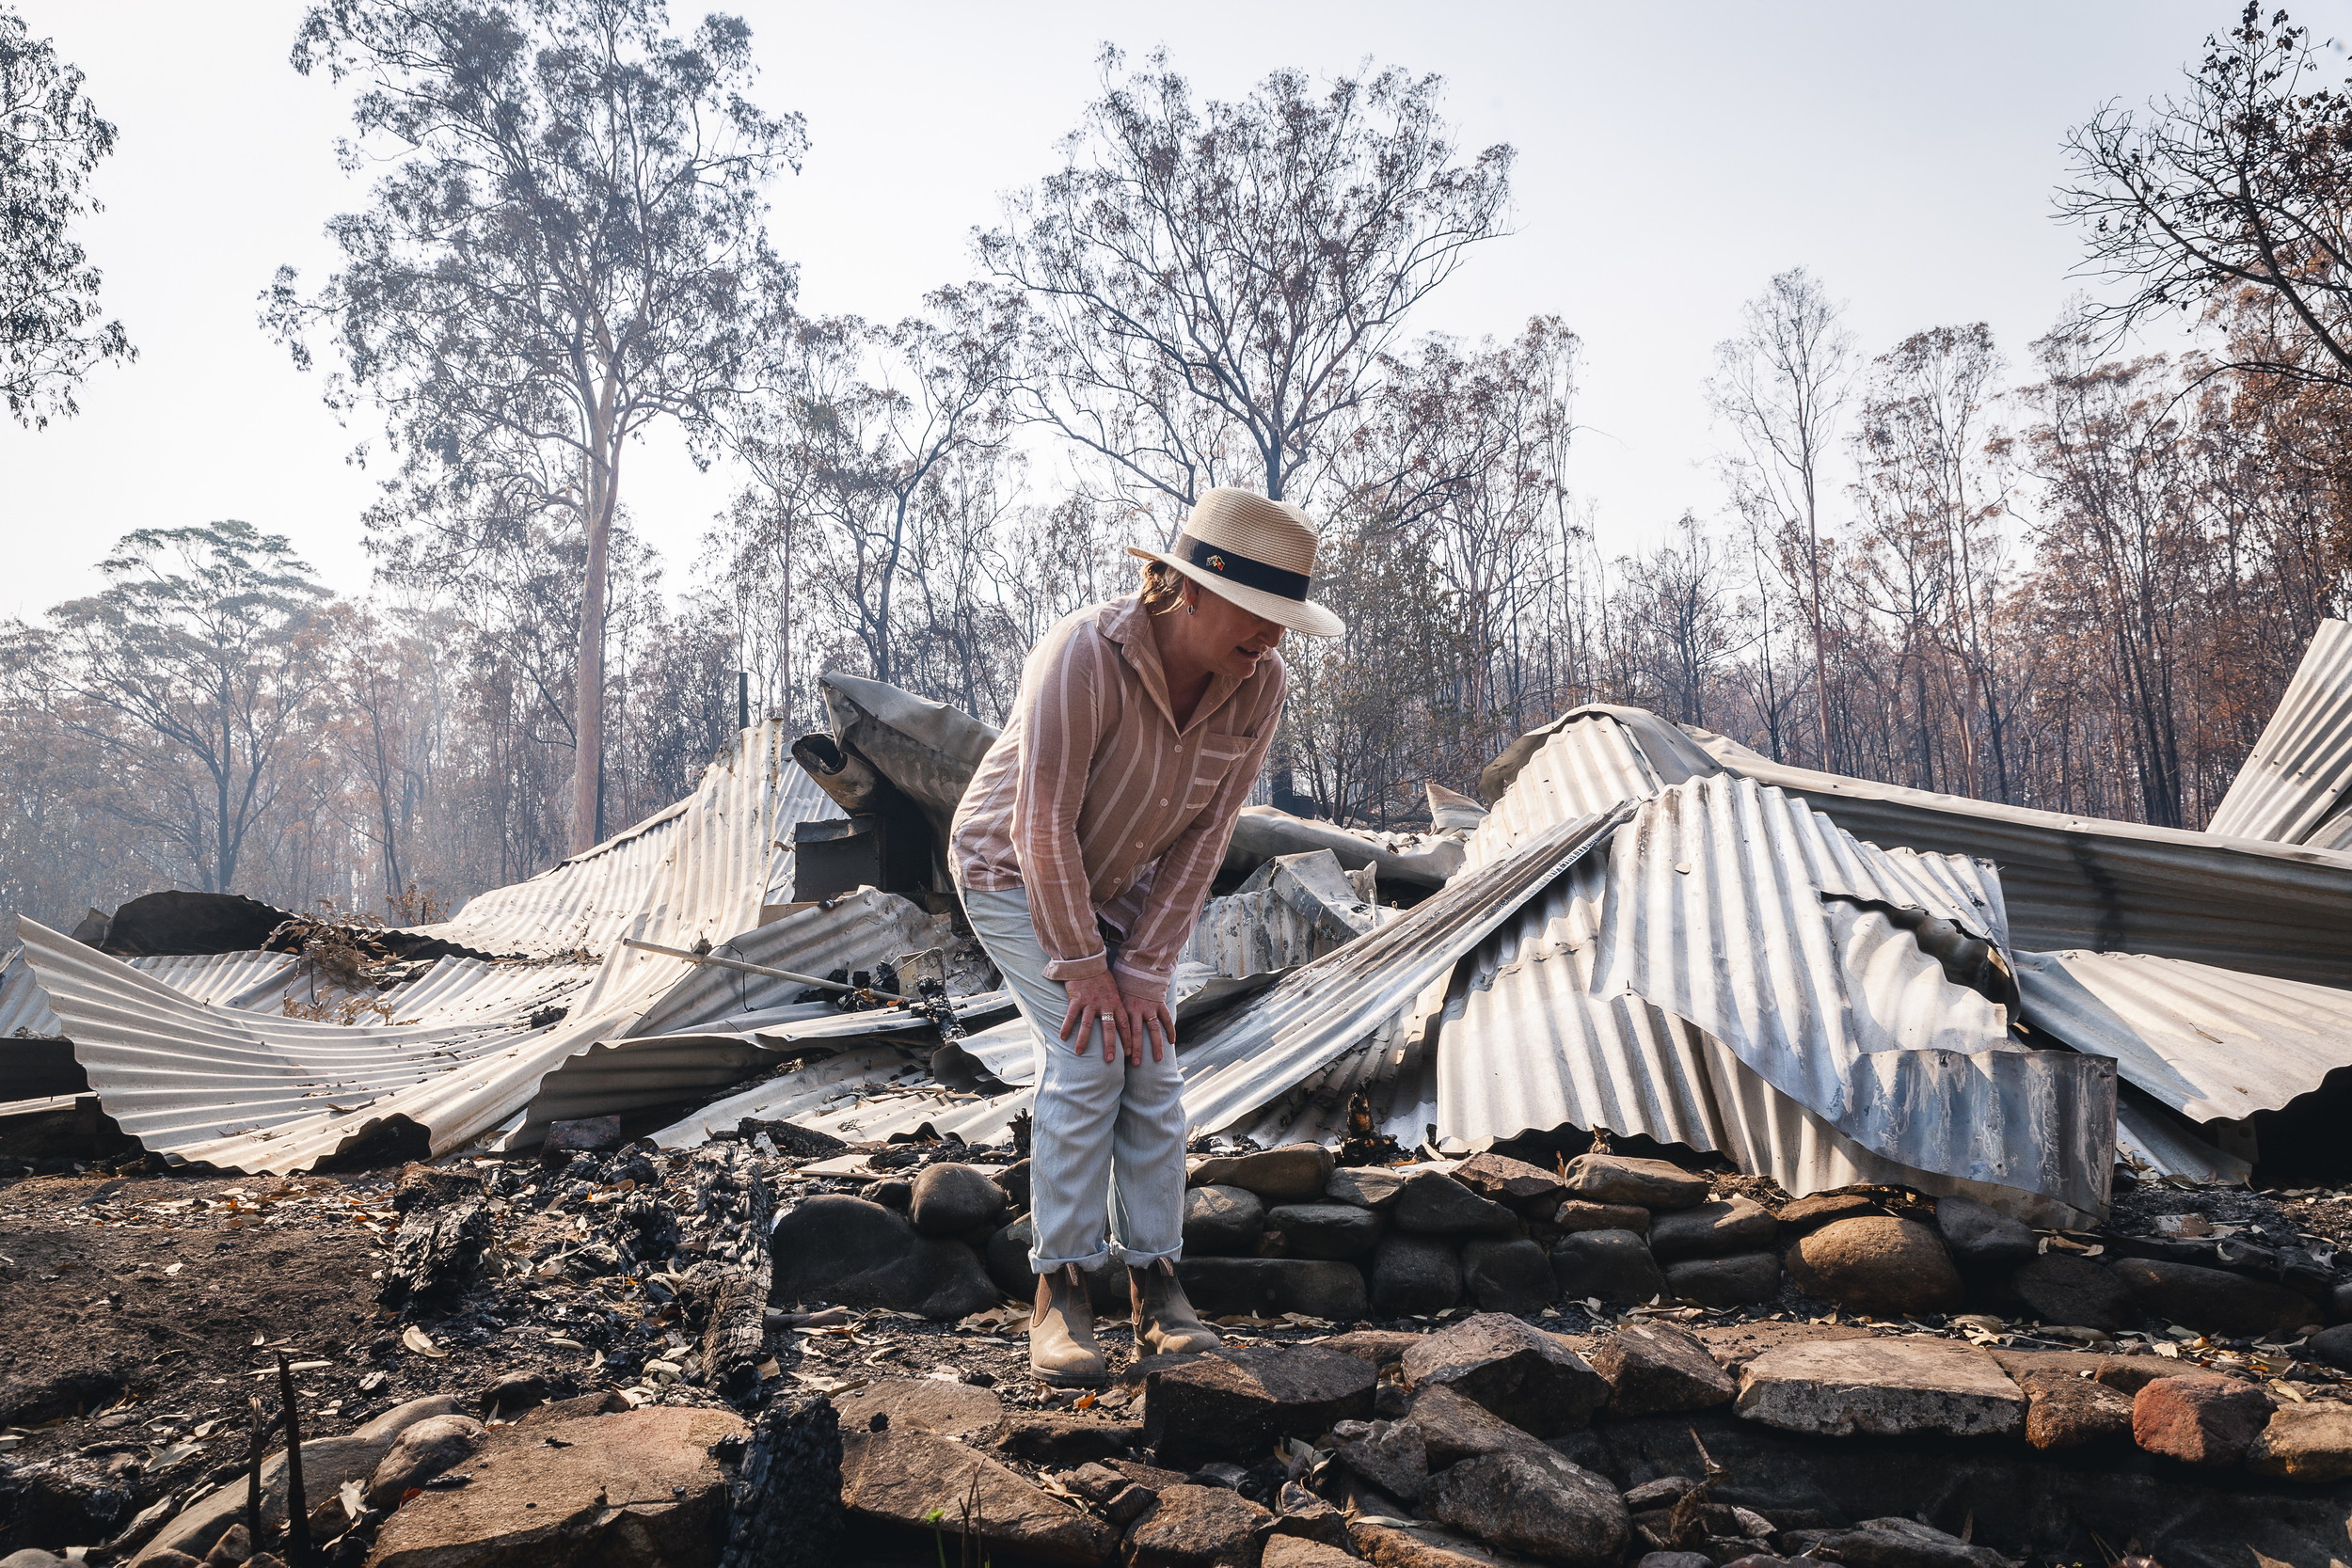 A woman examines the singed ground and remnants of her house which lays collapsed behind her